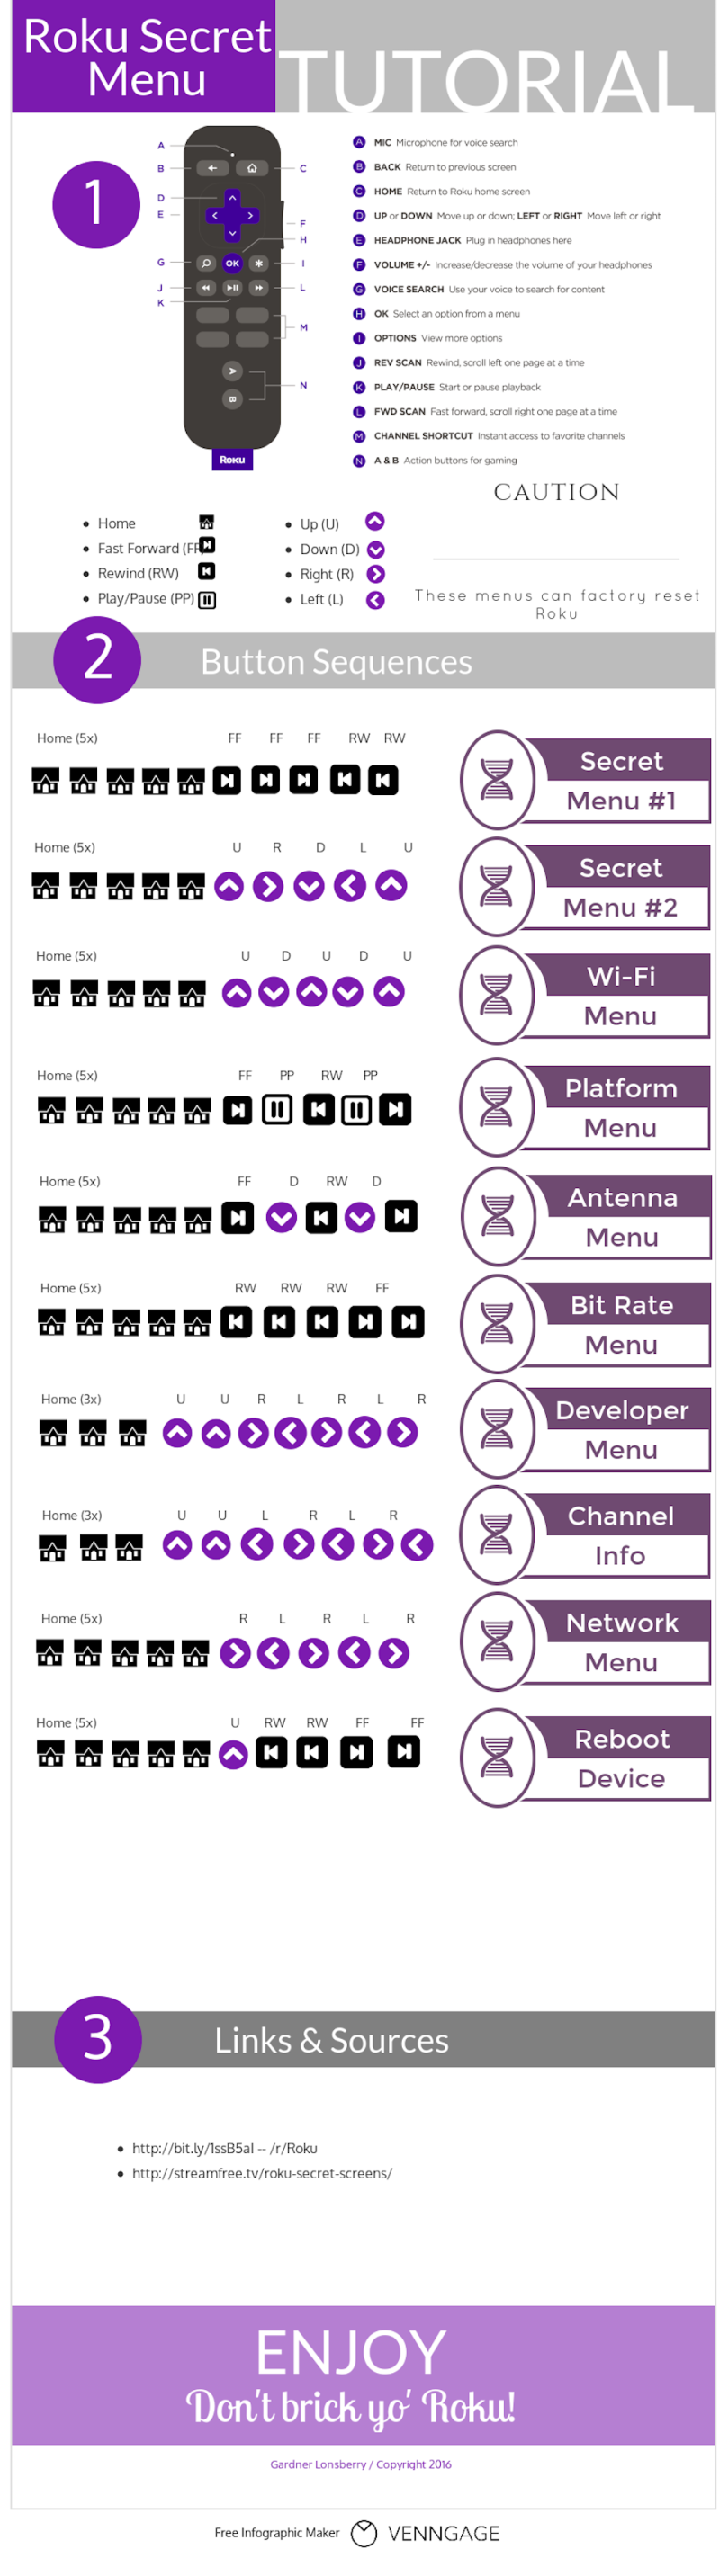 All the Roku Secret Commands and Menus In One Graphic #menus